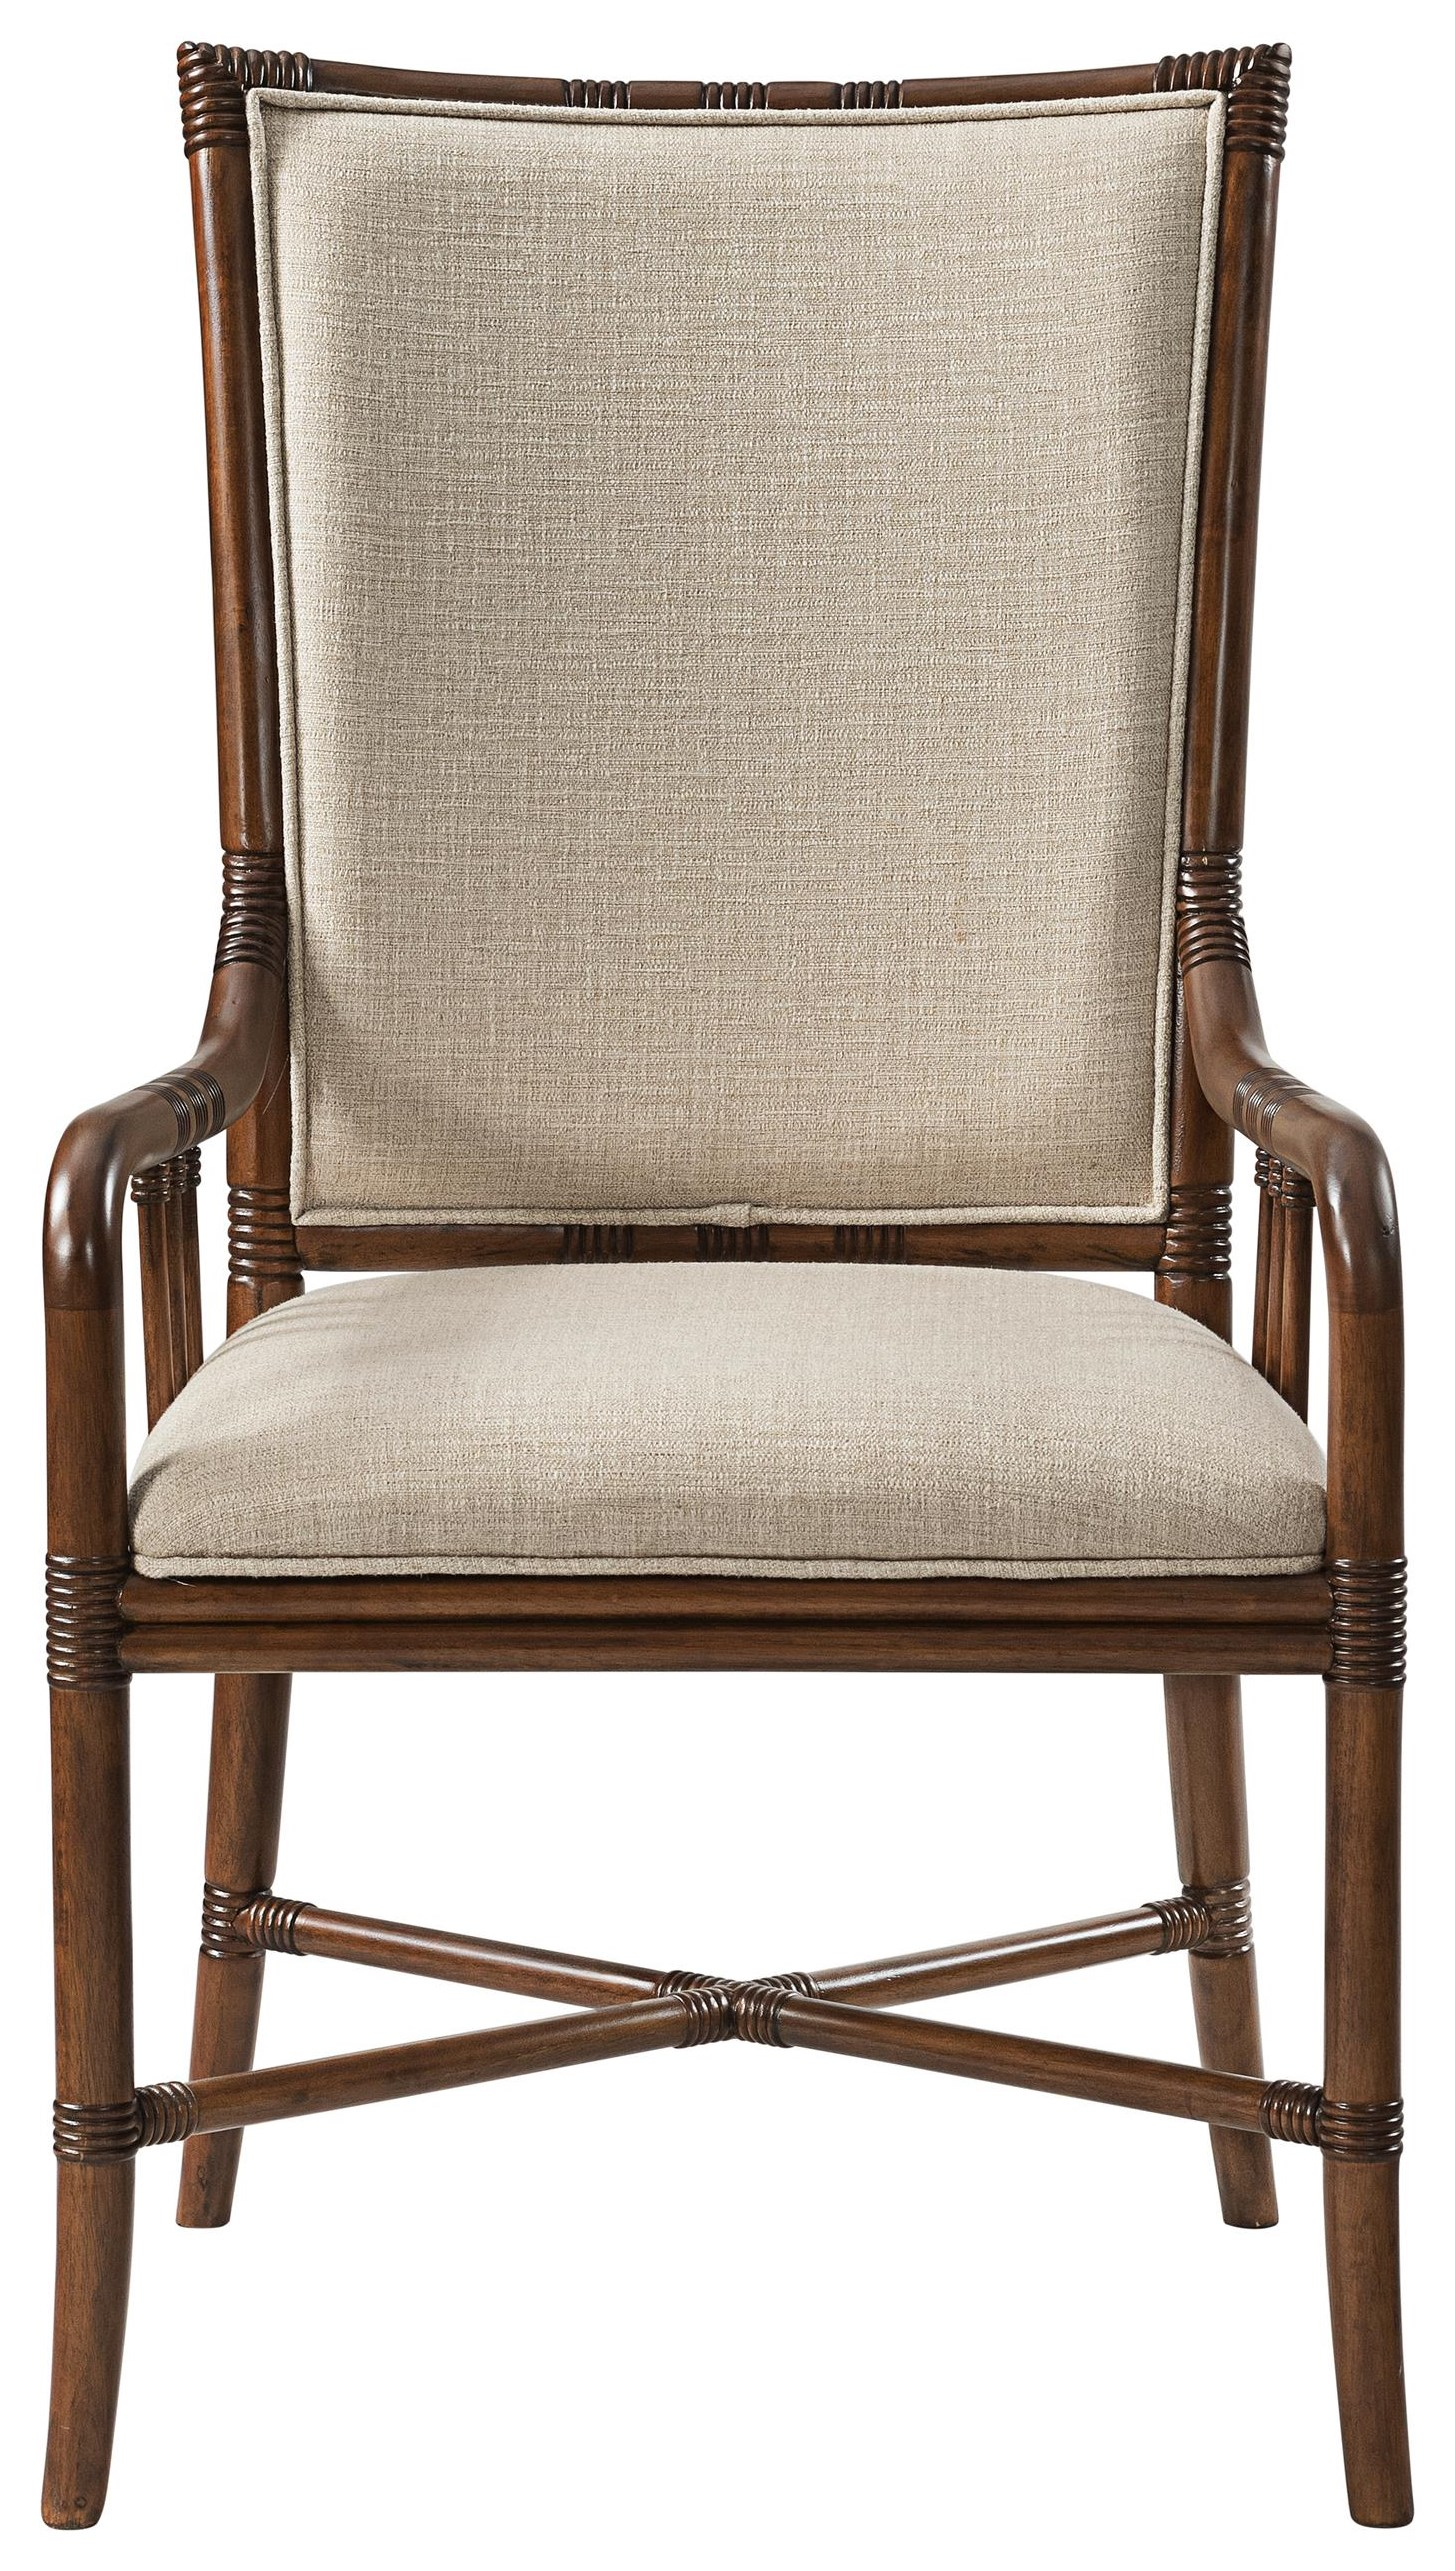 Tropical Breeze Upholstered Arm Chair by Stillwater Furniture at Baer's Furniture